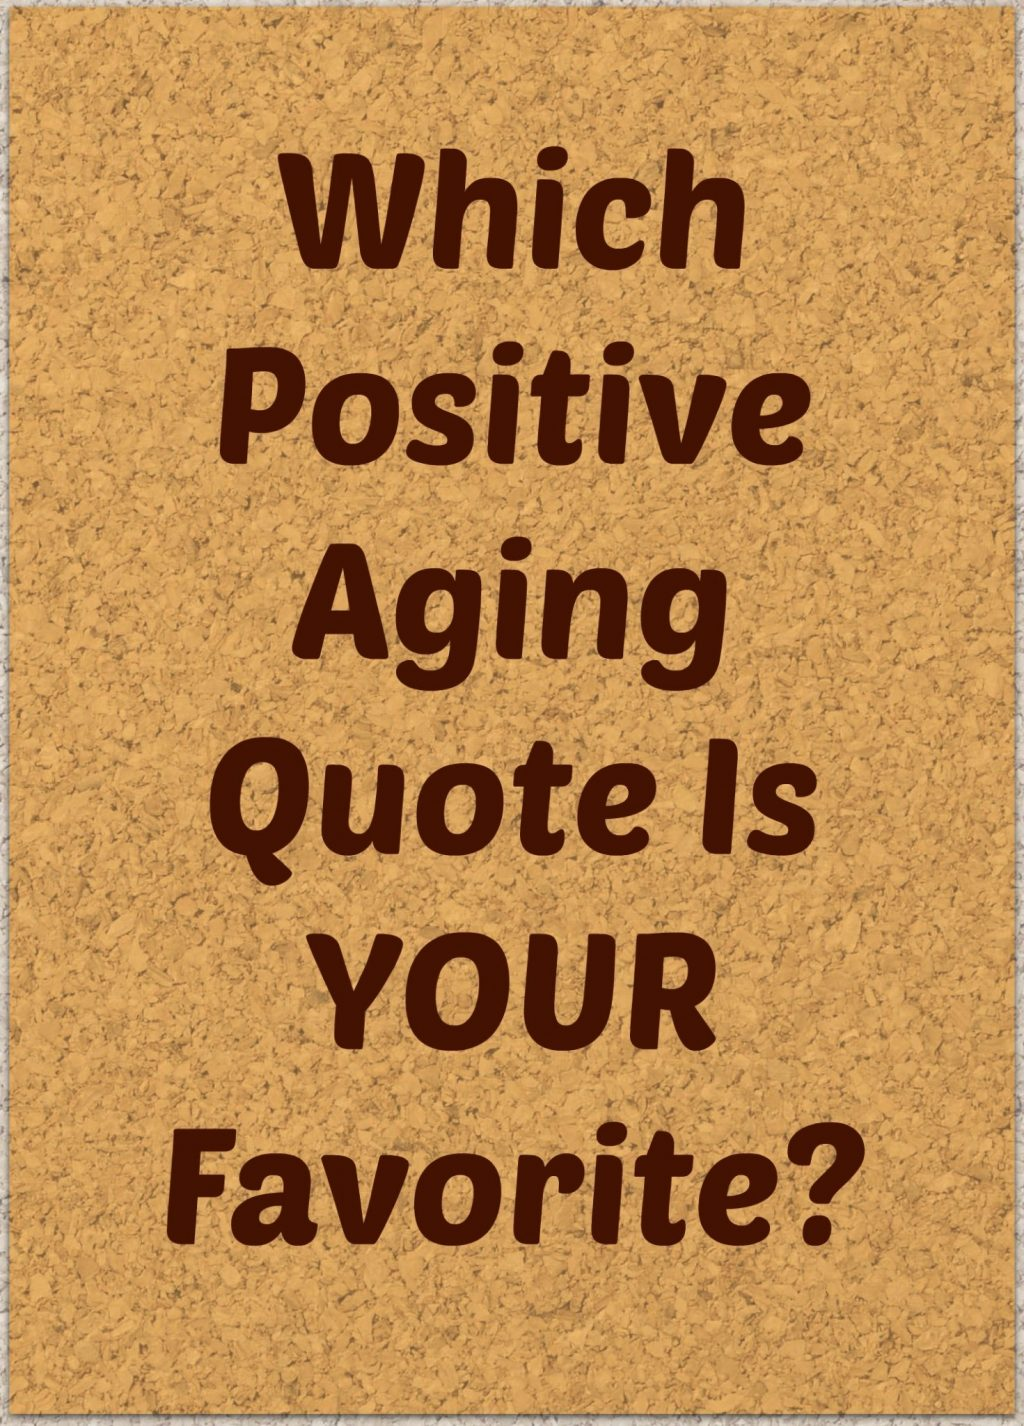 Positive Quotes 50 Of The Best Positive Aging Quotes I Could Find